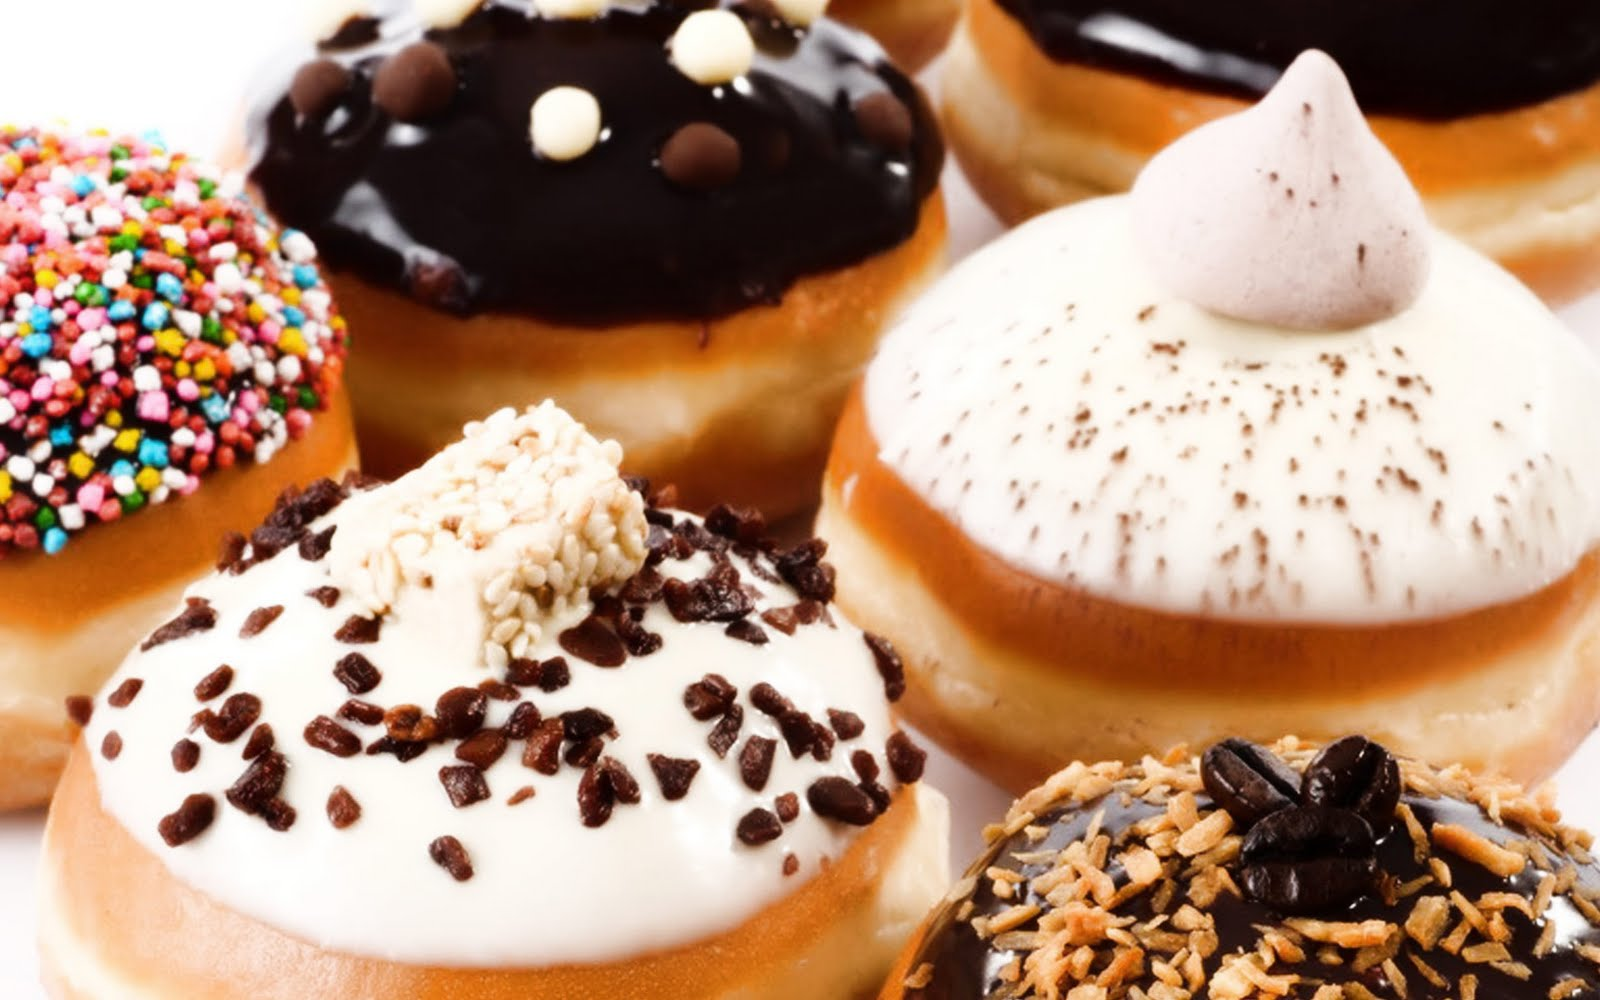 Do you want to have one of these donuts?